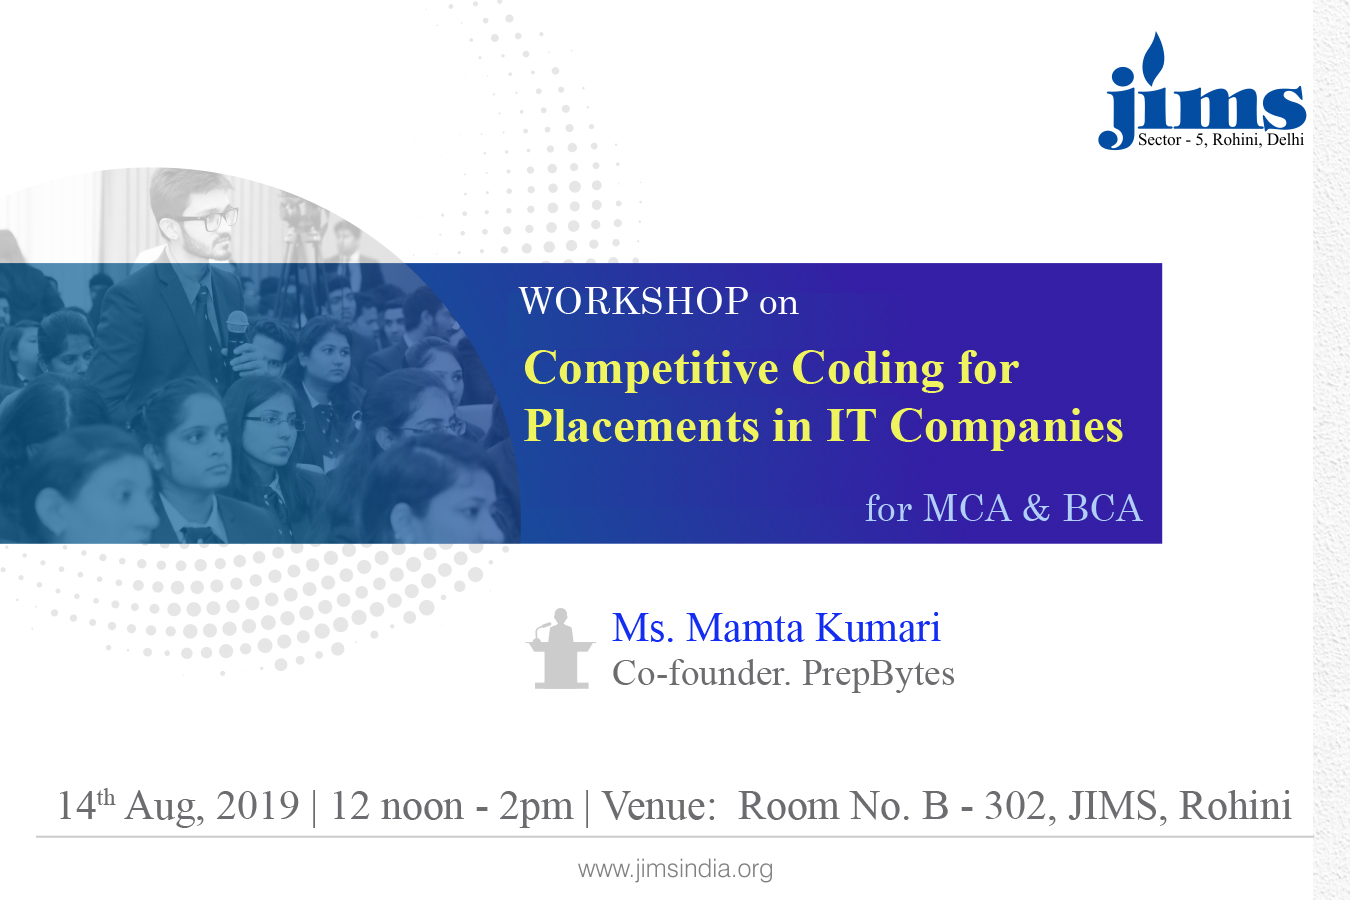 JIMS, Rohini is organizing a workshop on Competitive Coding for Placements in IT Companies for MCA and BCA students